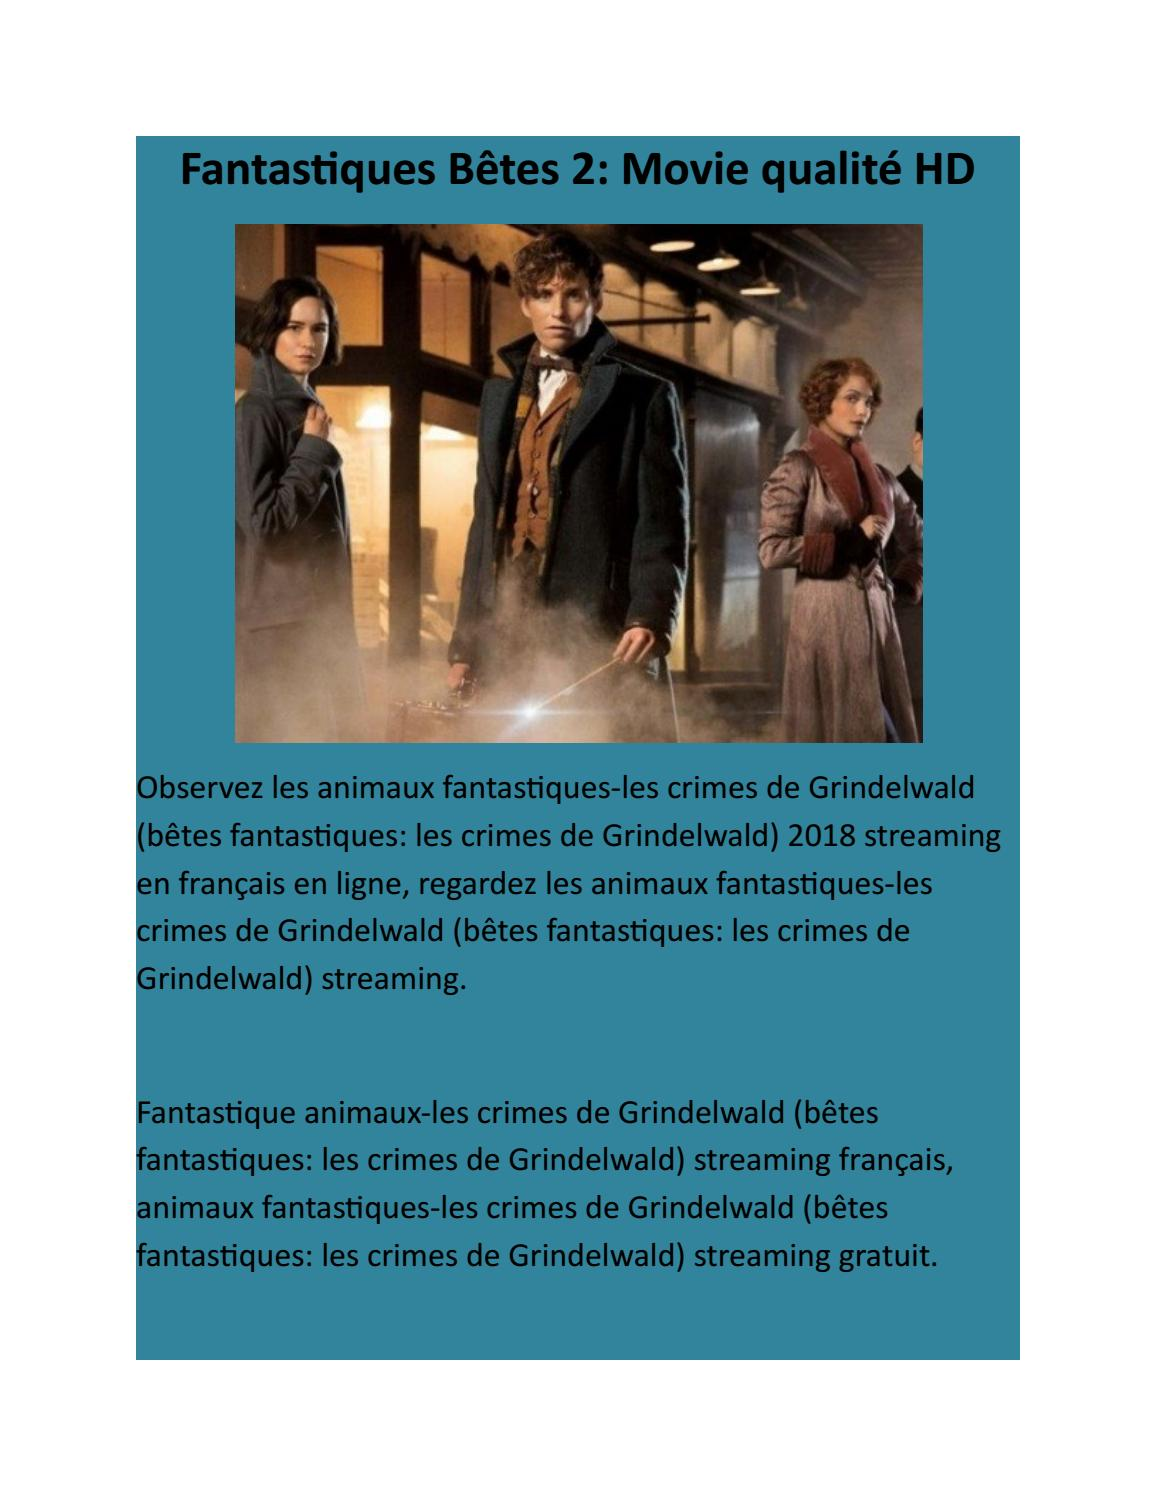 Les Animaux Fantastiques 2 Streaming Vf Hd : animaux, fantastiques, streaming, Fantastic, Bêtes, Crimes, Grindelwald, Qualité, Orange, Black, Issuu